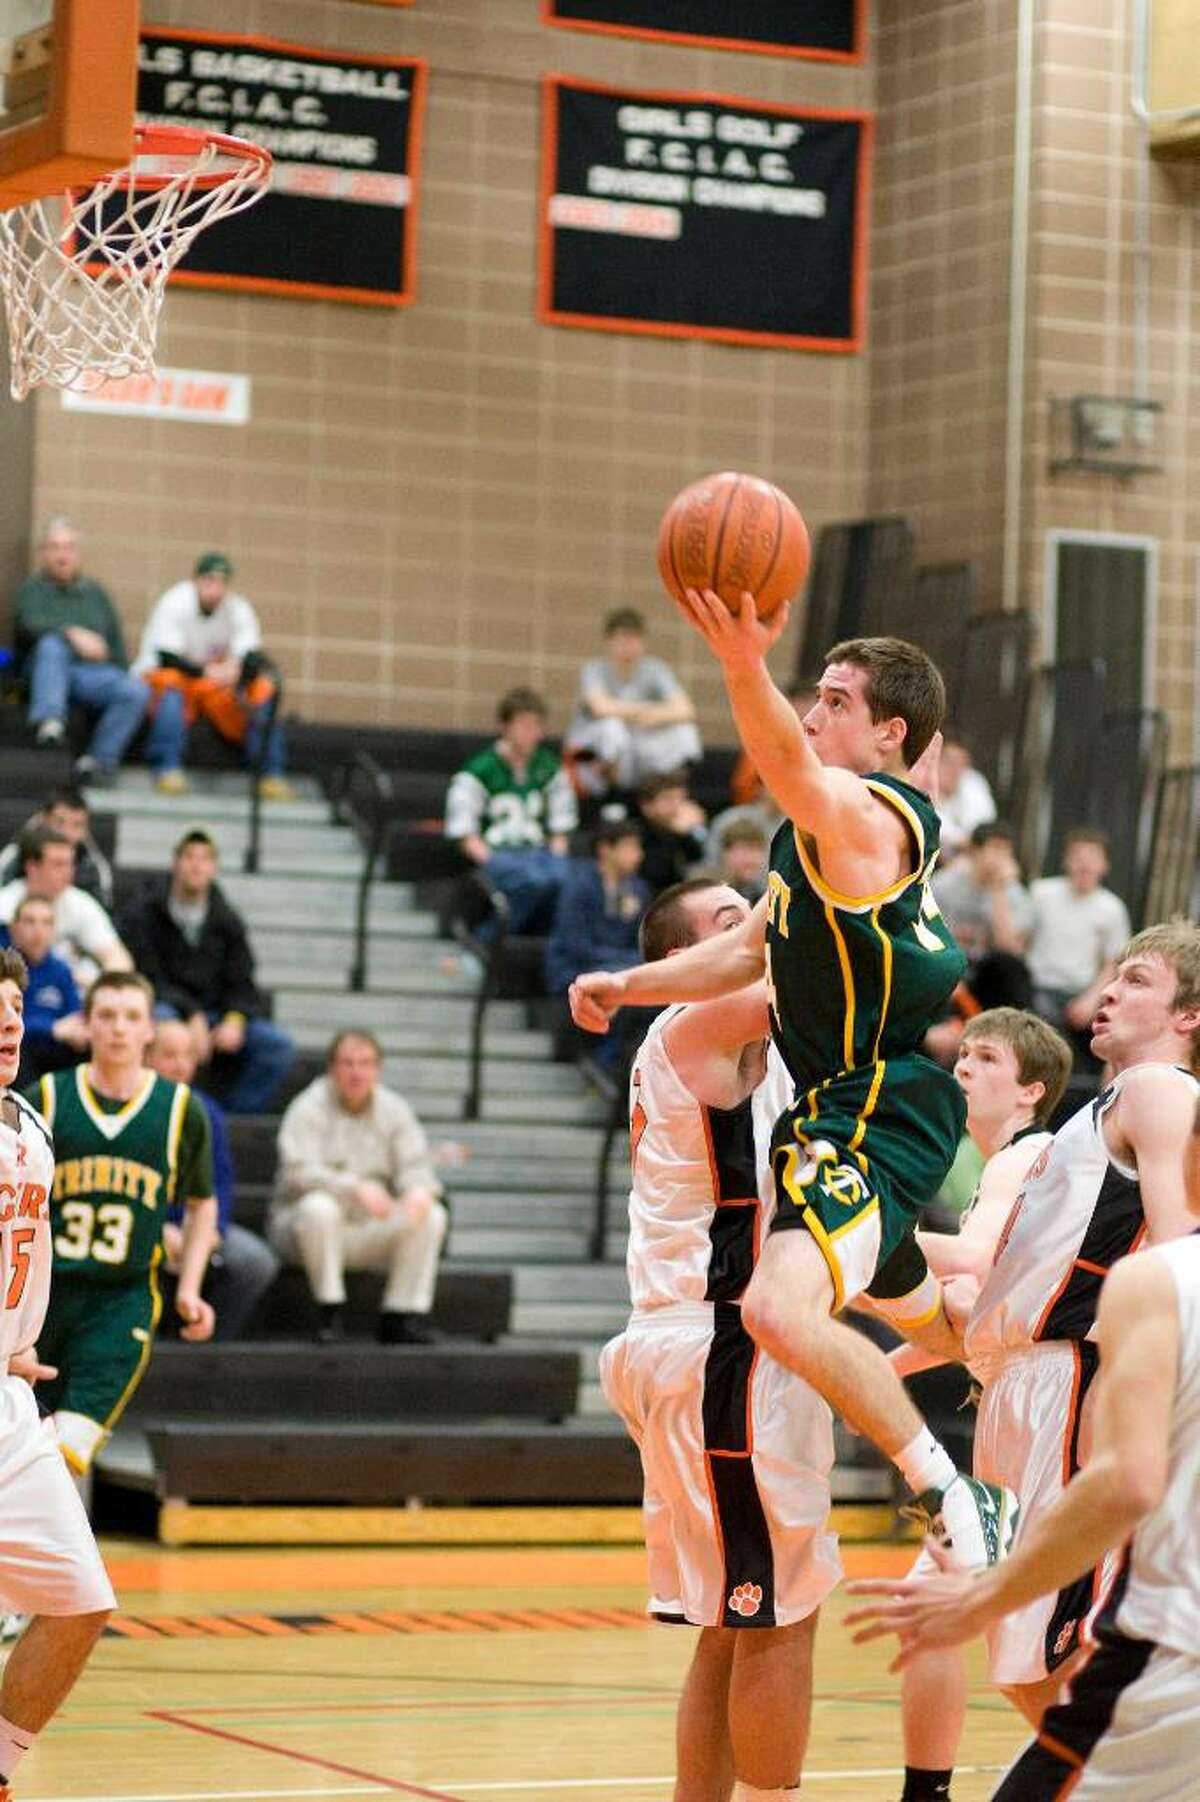 Trinity Catholics's Remy Pinson drives in for a layup during an FCIAC game against Ridgefield Monday night at Ridgefield High.